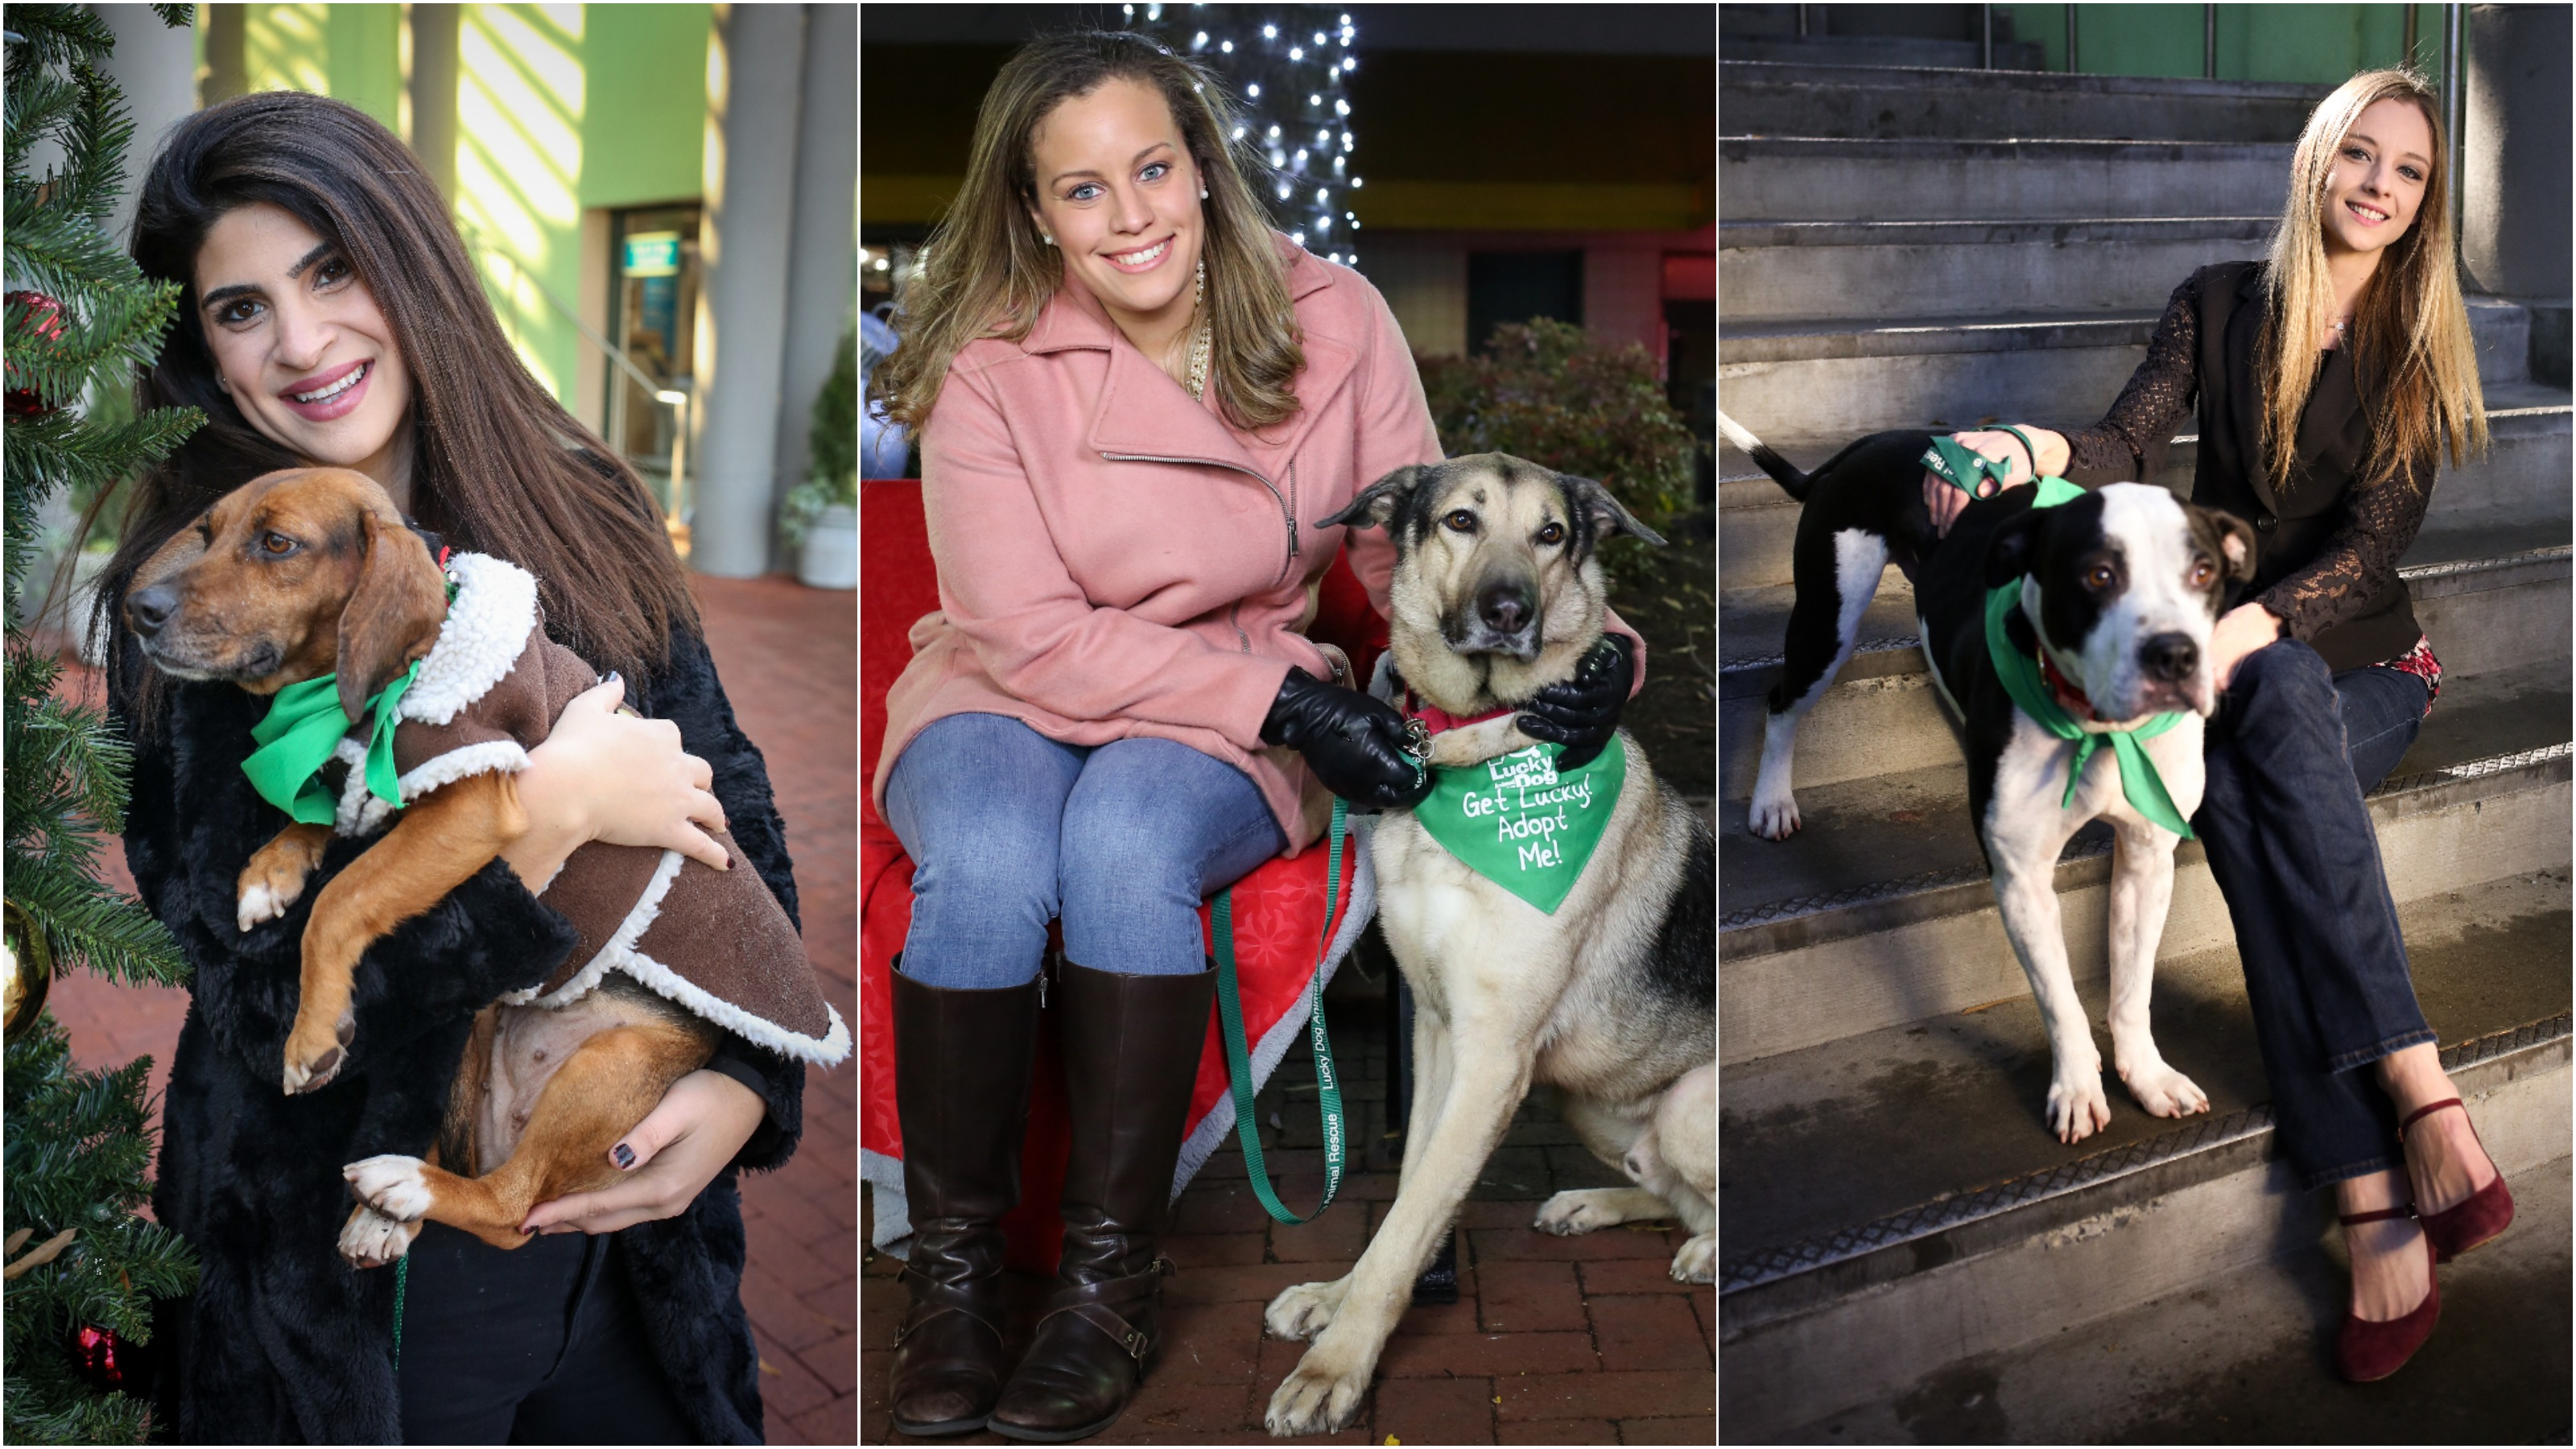 All the ladies in this photo gallery are single and all the pups featured are available for adoption through Lucky Dog Animal Rescue. Lets get some single ladies dates and homeless dogs forever homes! (Amanda Andrade-Rhoades/DC Refined)<p></p>